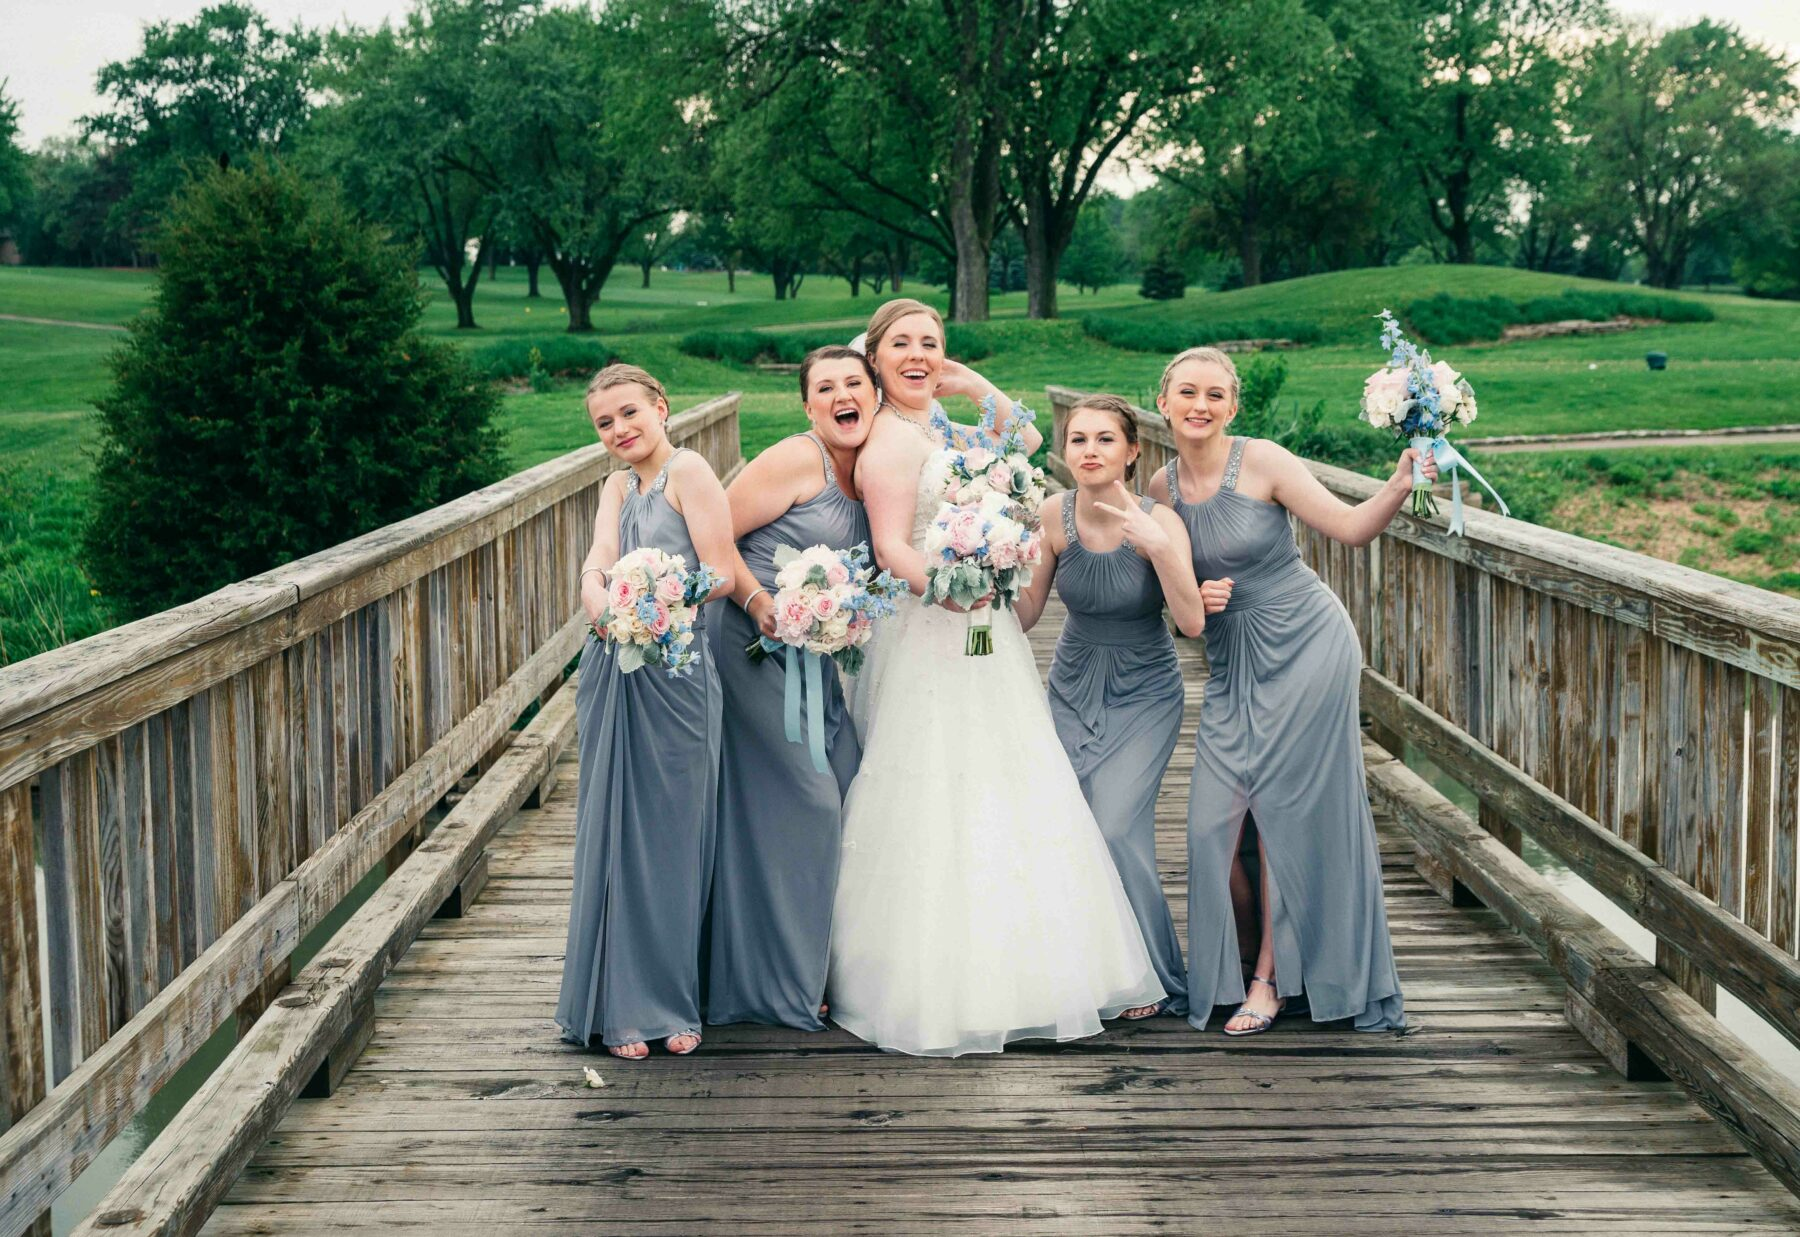 fun bridal party photos